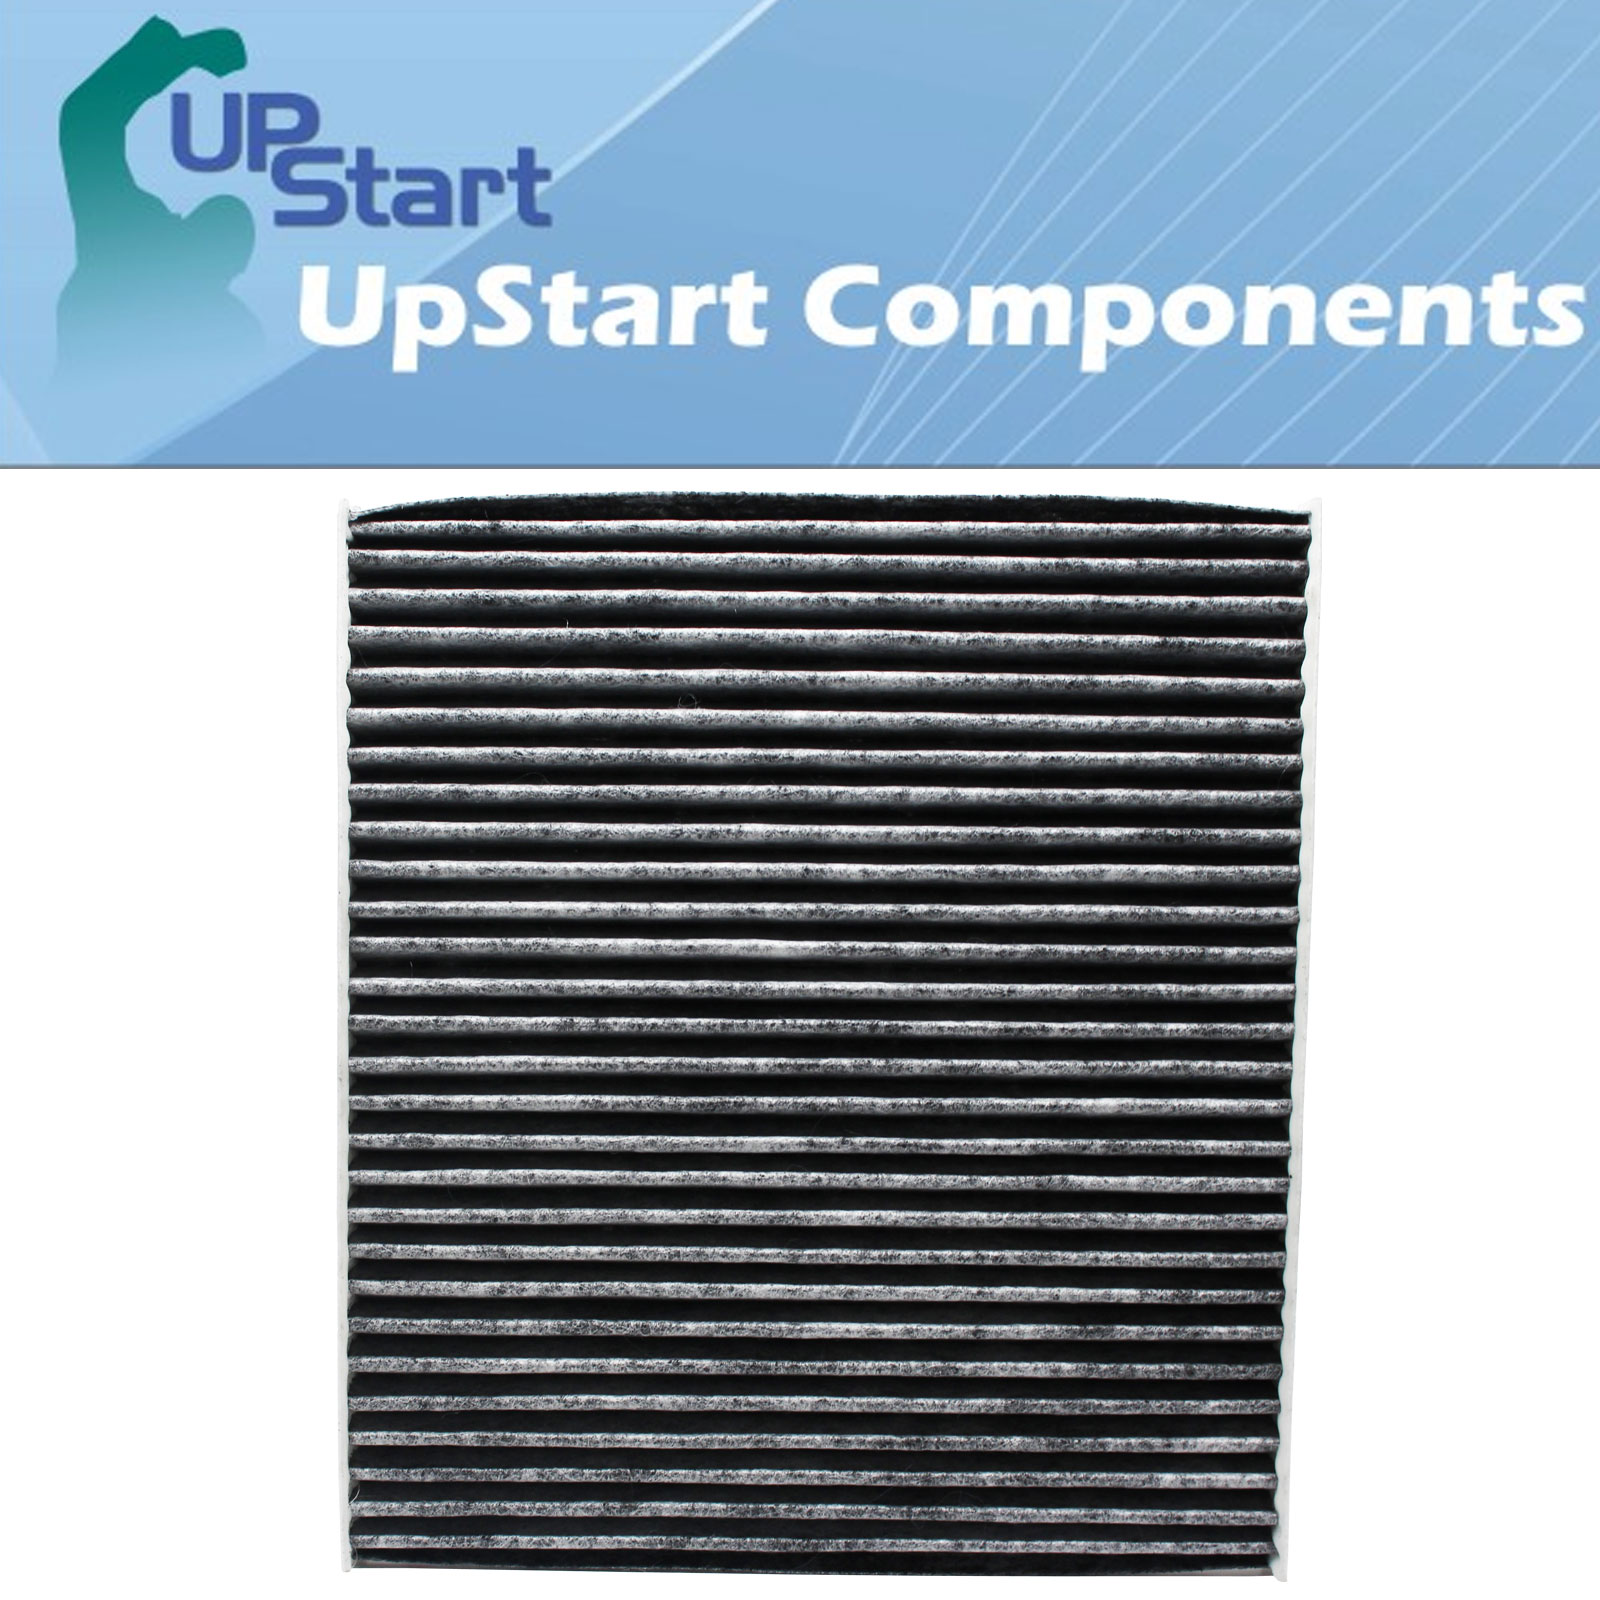 2-Pack Replacement Cabin Air Filter for 2013 Hyundai ACCENT L4 1.6L 1591cc 97 CID Car/Automotive - Activated Carbon, ACF-10709